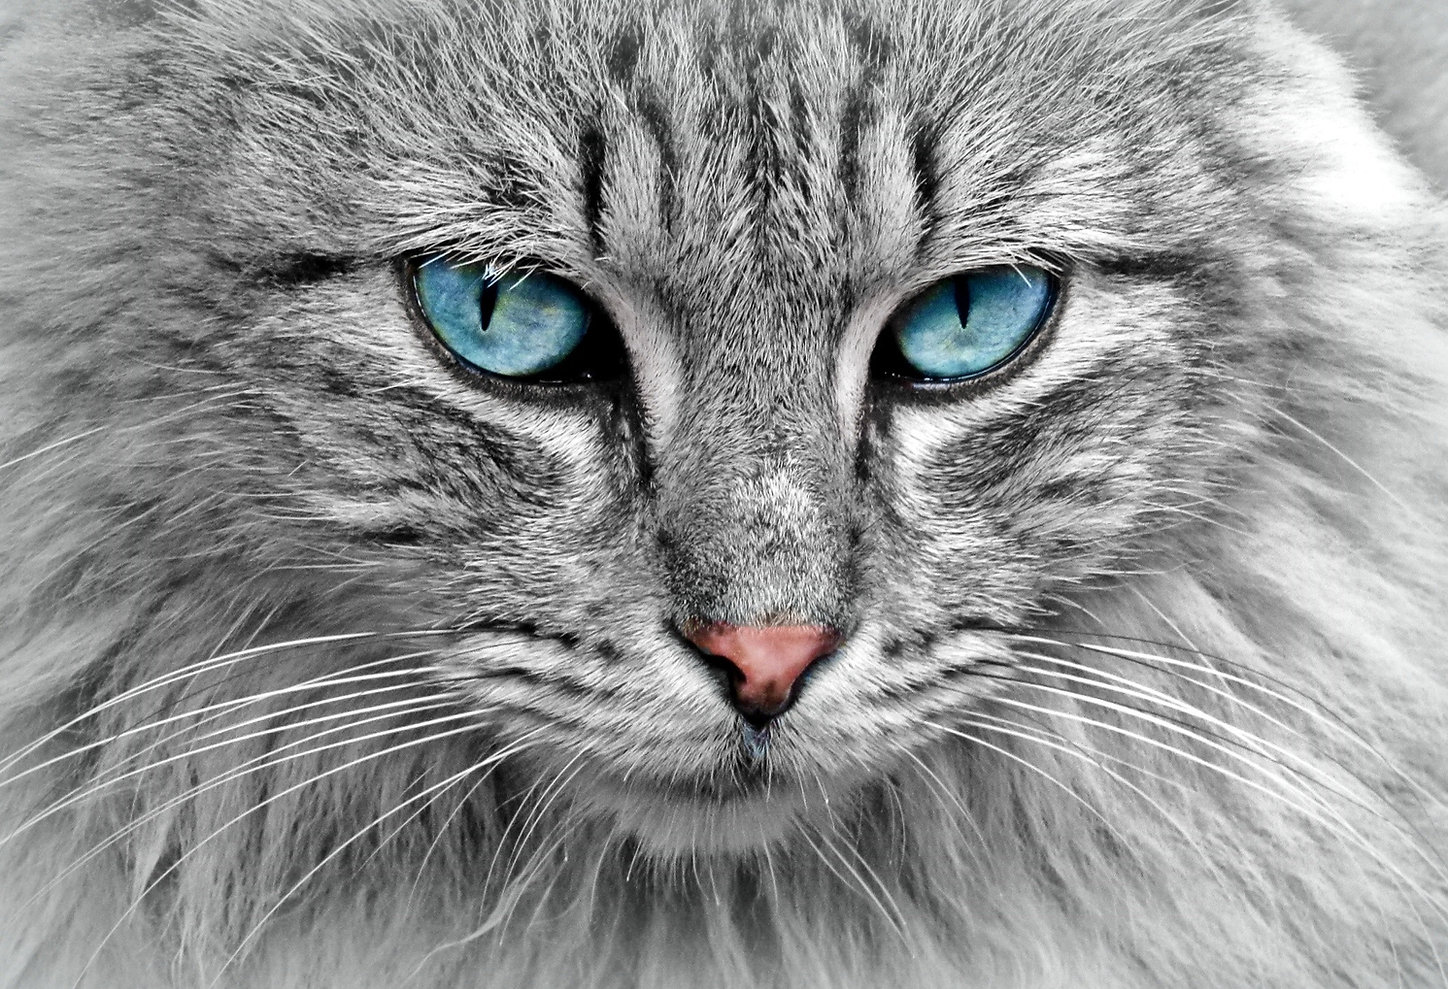 animal-cat-eyes-33537.jpg